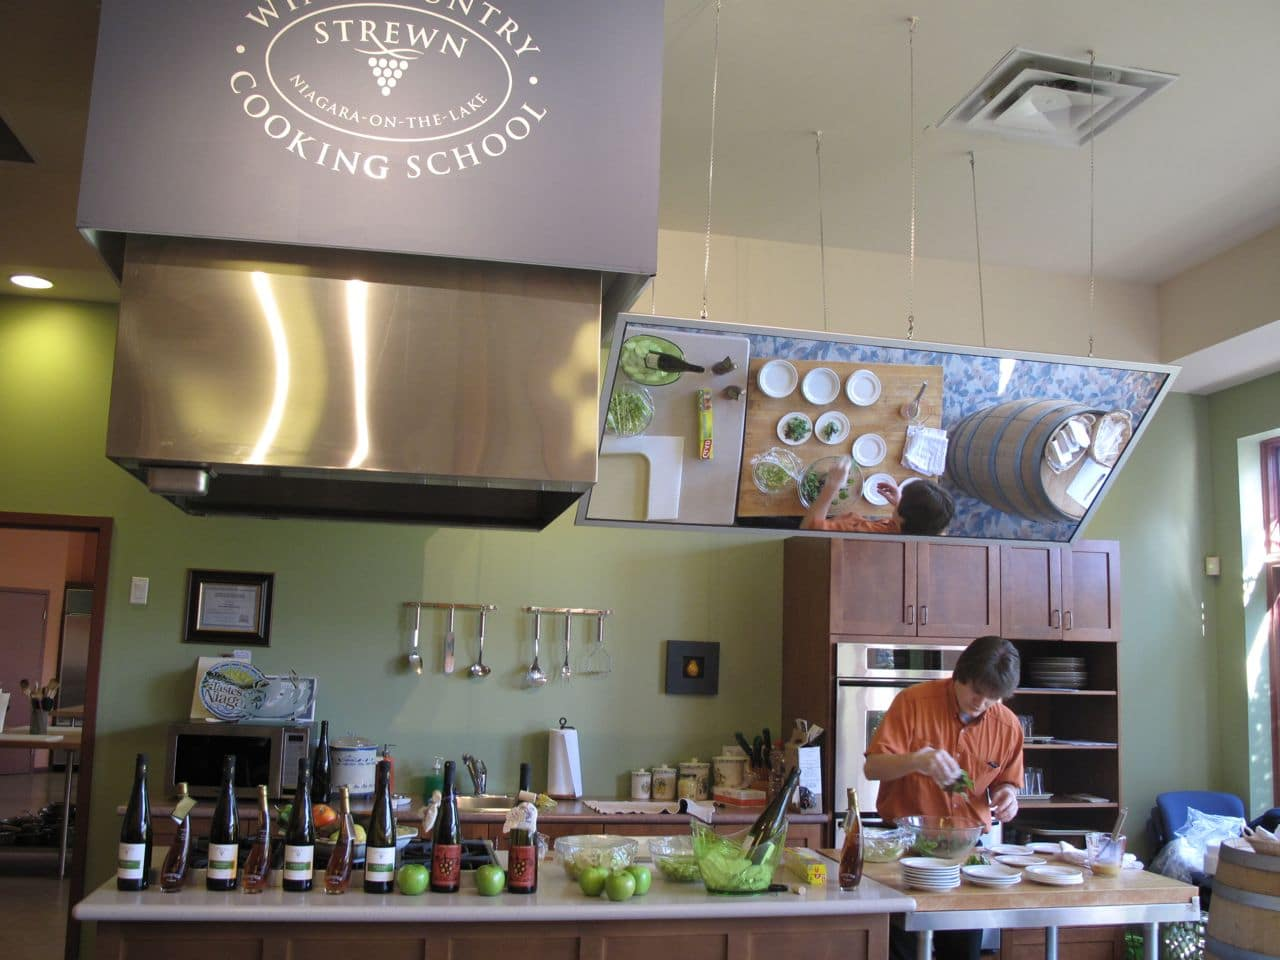 Niagara on the Lake Wineries: Strewn Winery offers a tasting room, cooking school and restaurant.